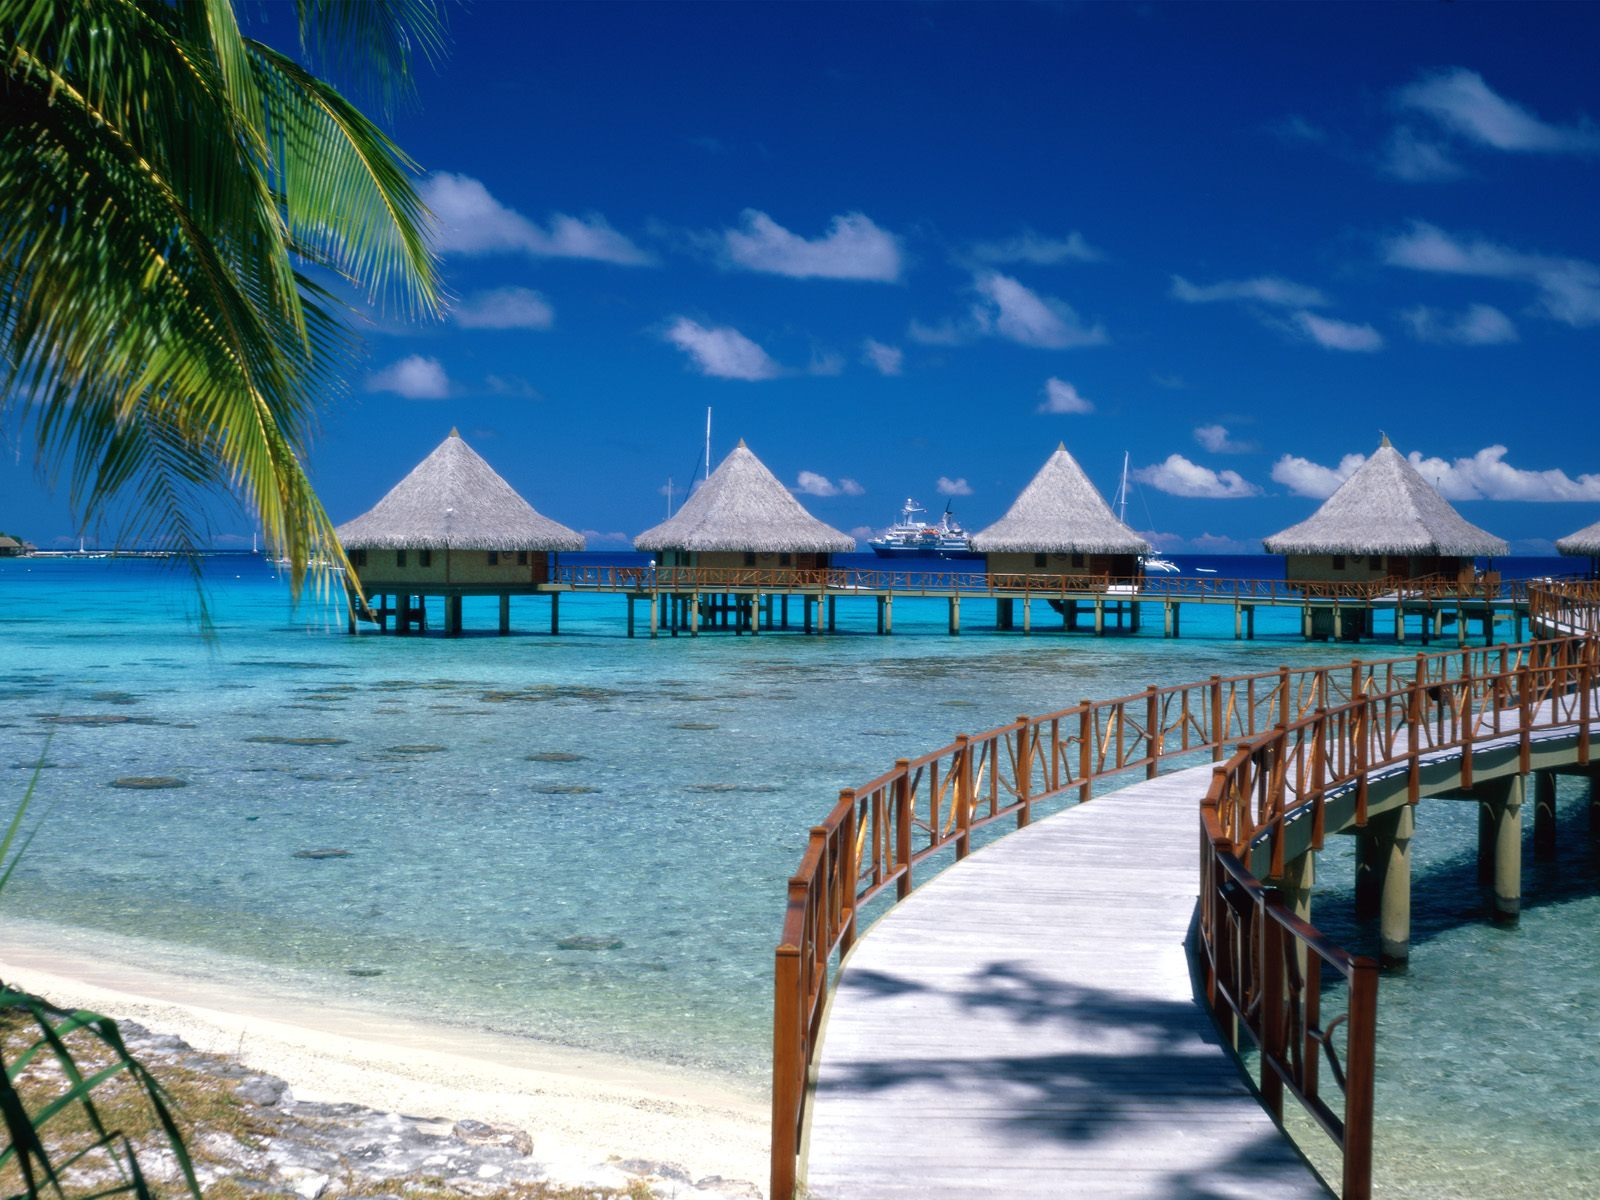 Walkway to Paradise Beach Wallpapers HD Wallpapers 1600x1200